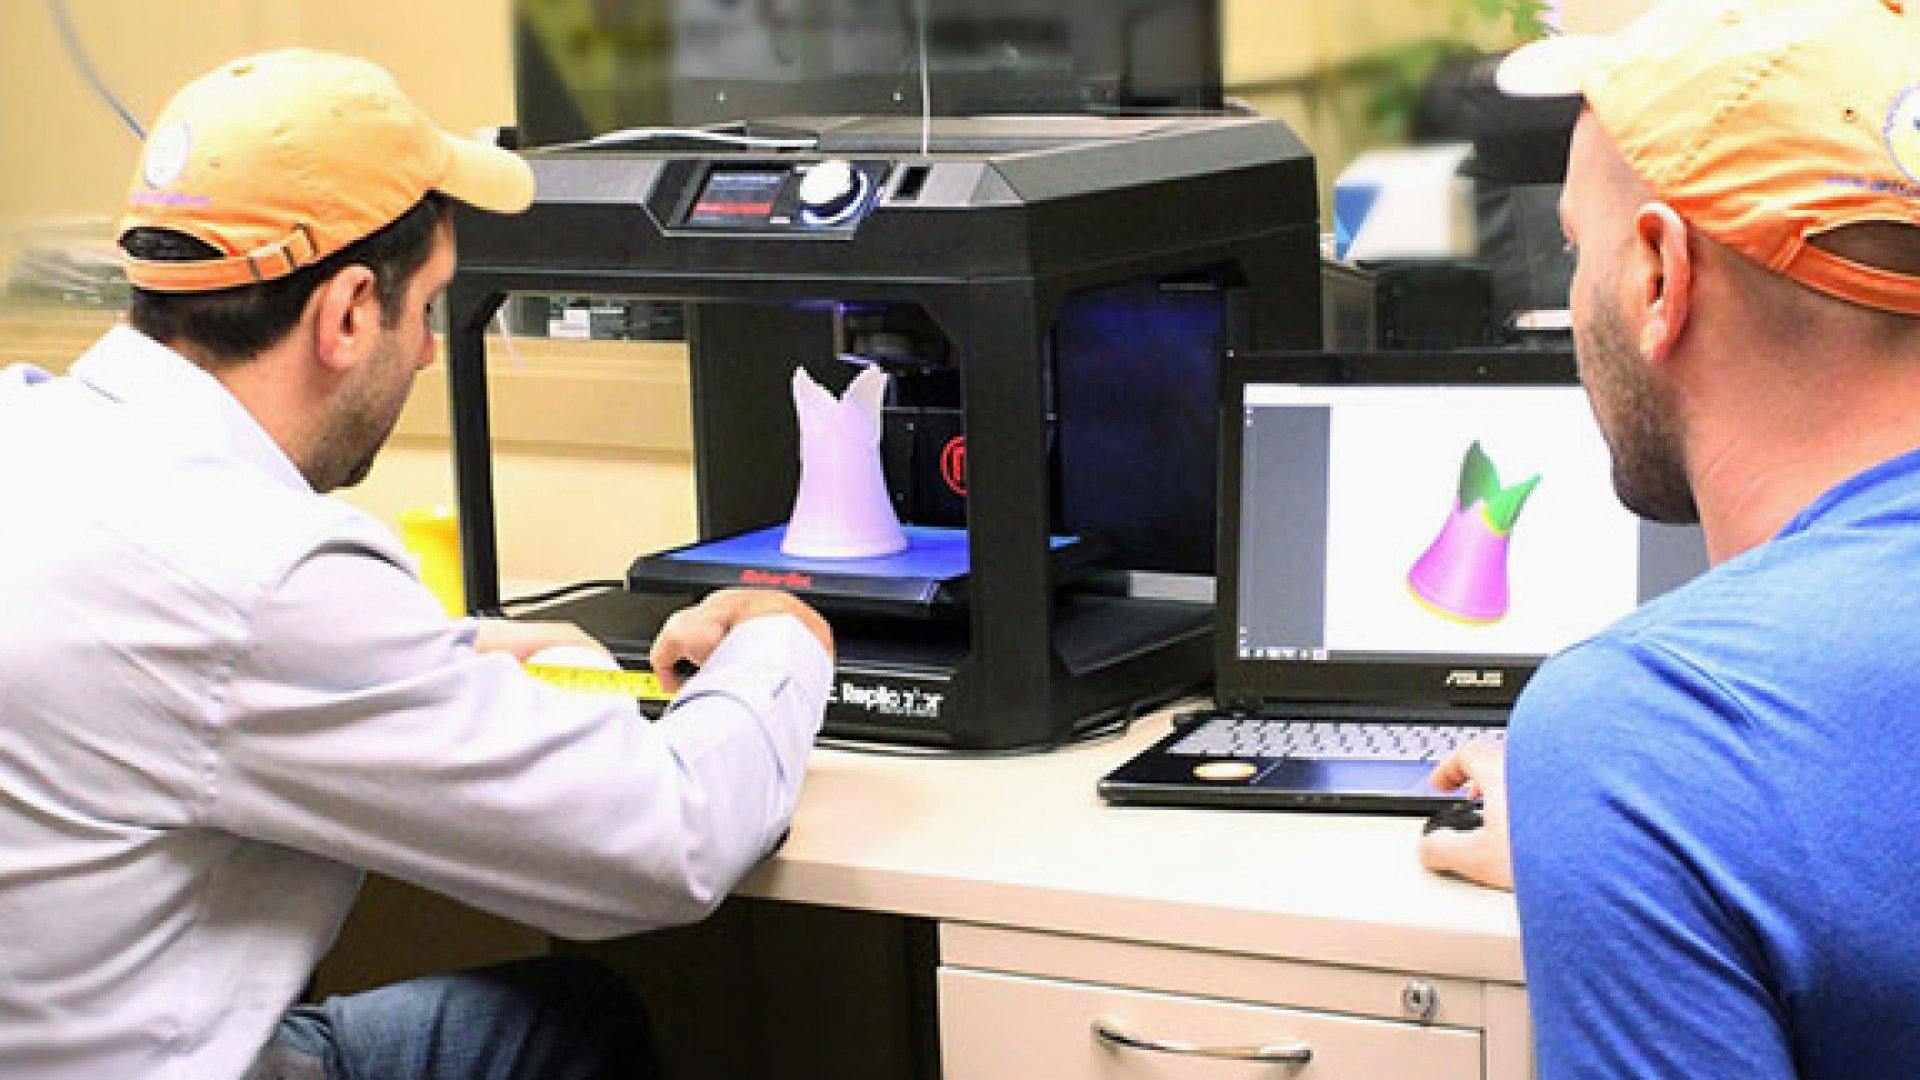 The Truth Behind MakerBot's Announcement That It's Outsourcing to China